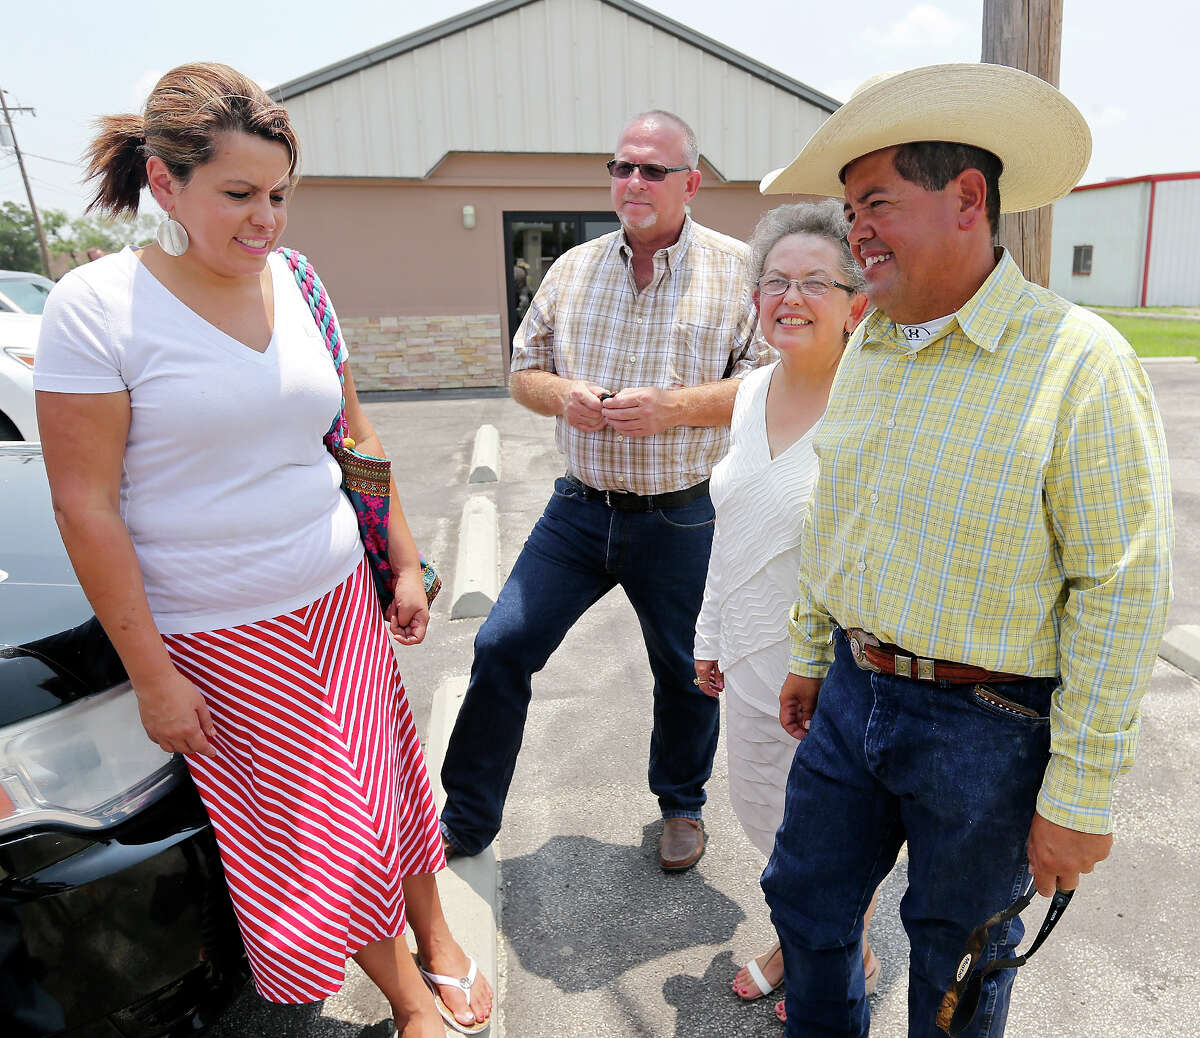 Victoria Rutkowski (from left), and her husband Jimmy, her mother Olga Serna, and brother Steven Serna talk about the undocumented women and children from Central America, Sunday July 20, 2014 outside the First Assembly of God Church in Karnes City, Tx., that are scheduled to be housed at the Karnes County Civil Detention Center. The family opposes the planned housing.